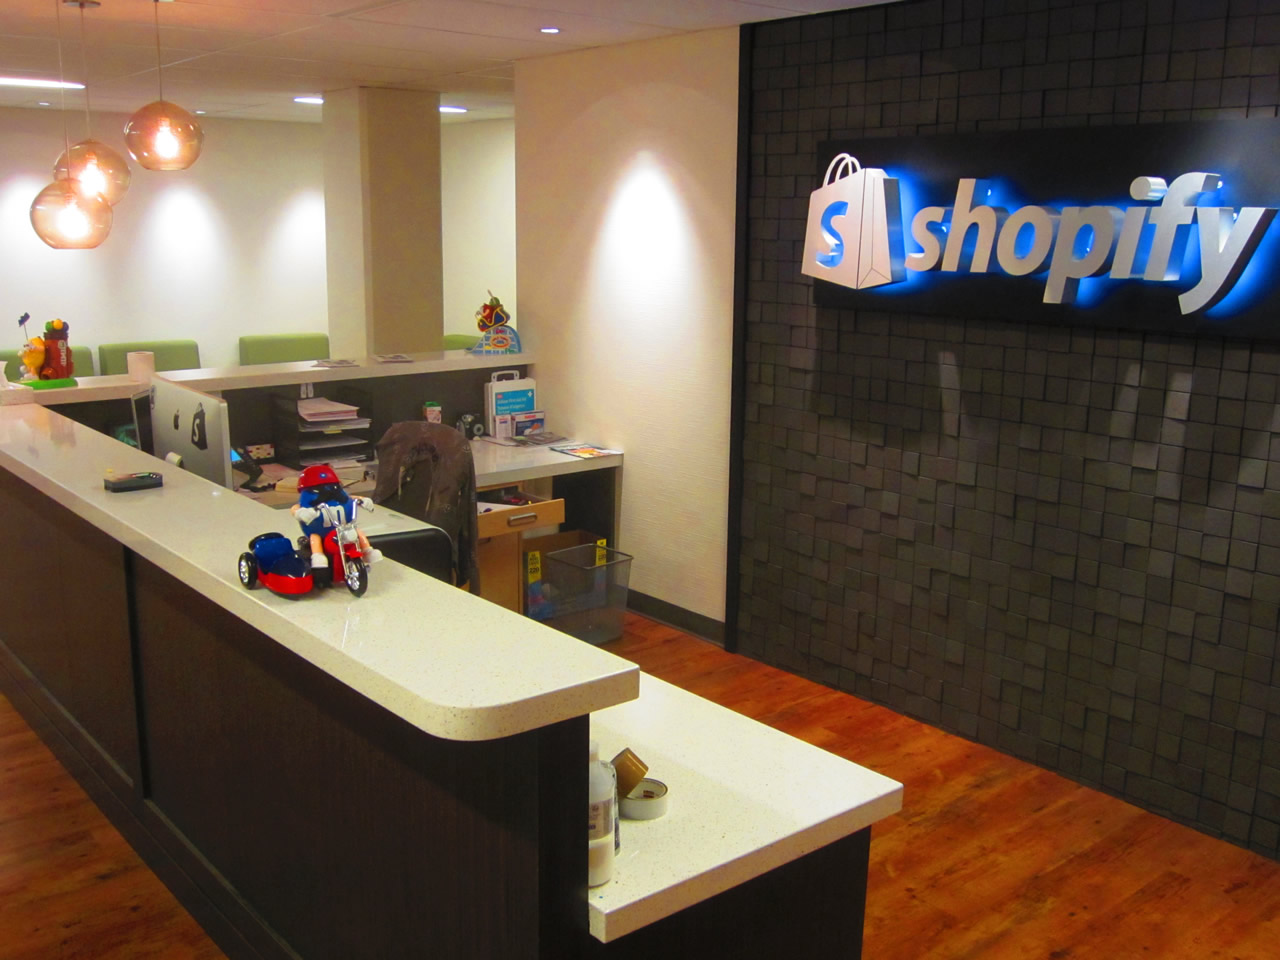 Shopify office lobby, with the front desk front and center